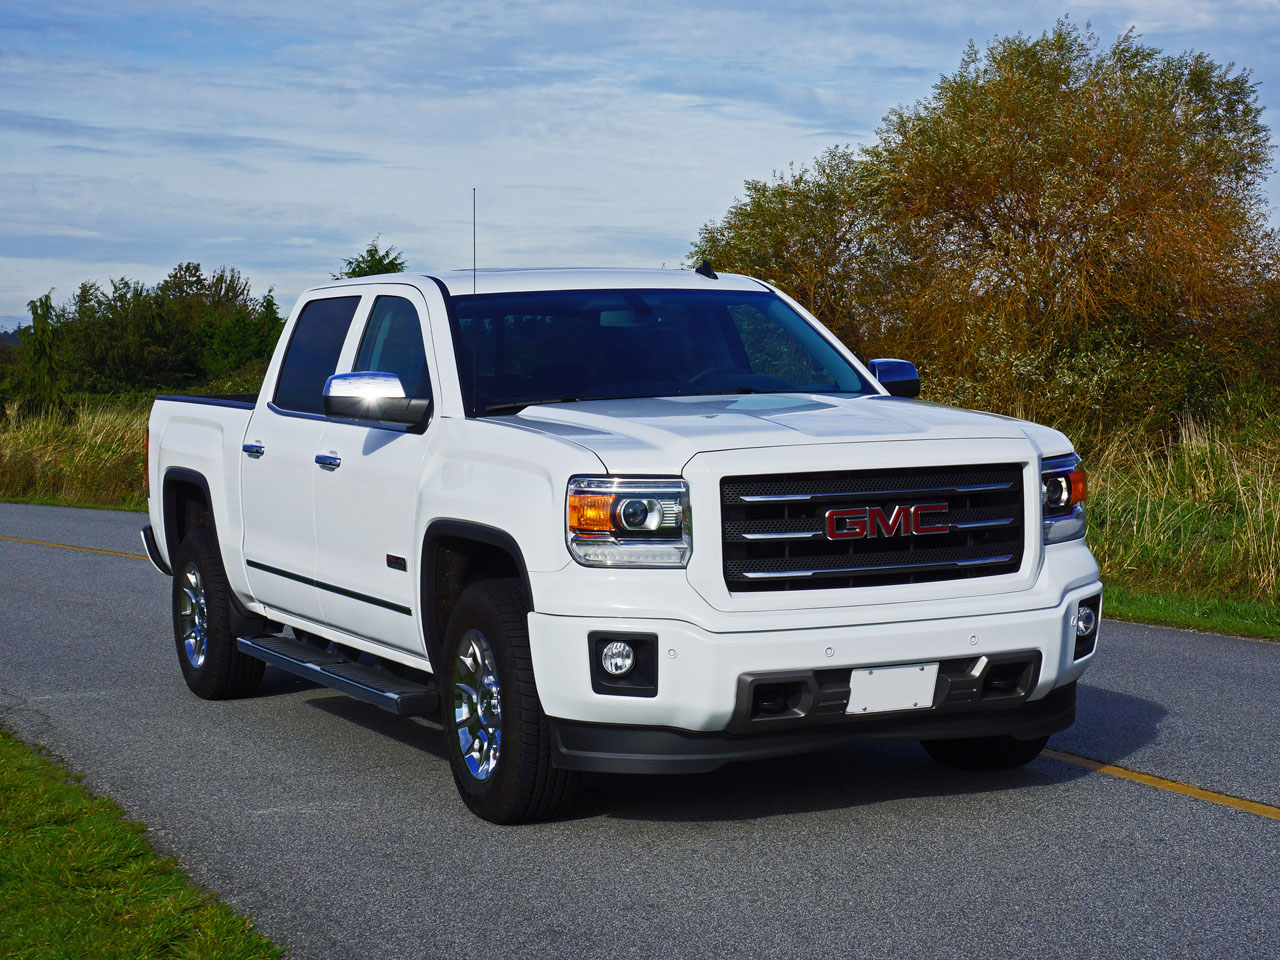 2014 gmc sierra 1500 slt crew cab 4wd road test review carcostcanada. Black Bedroom Furniture Sets. Home Design Ideas